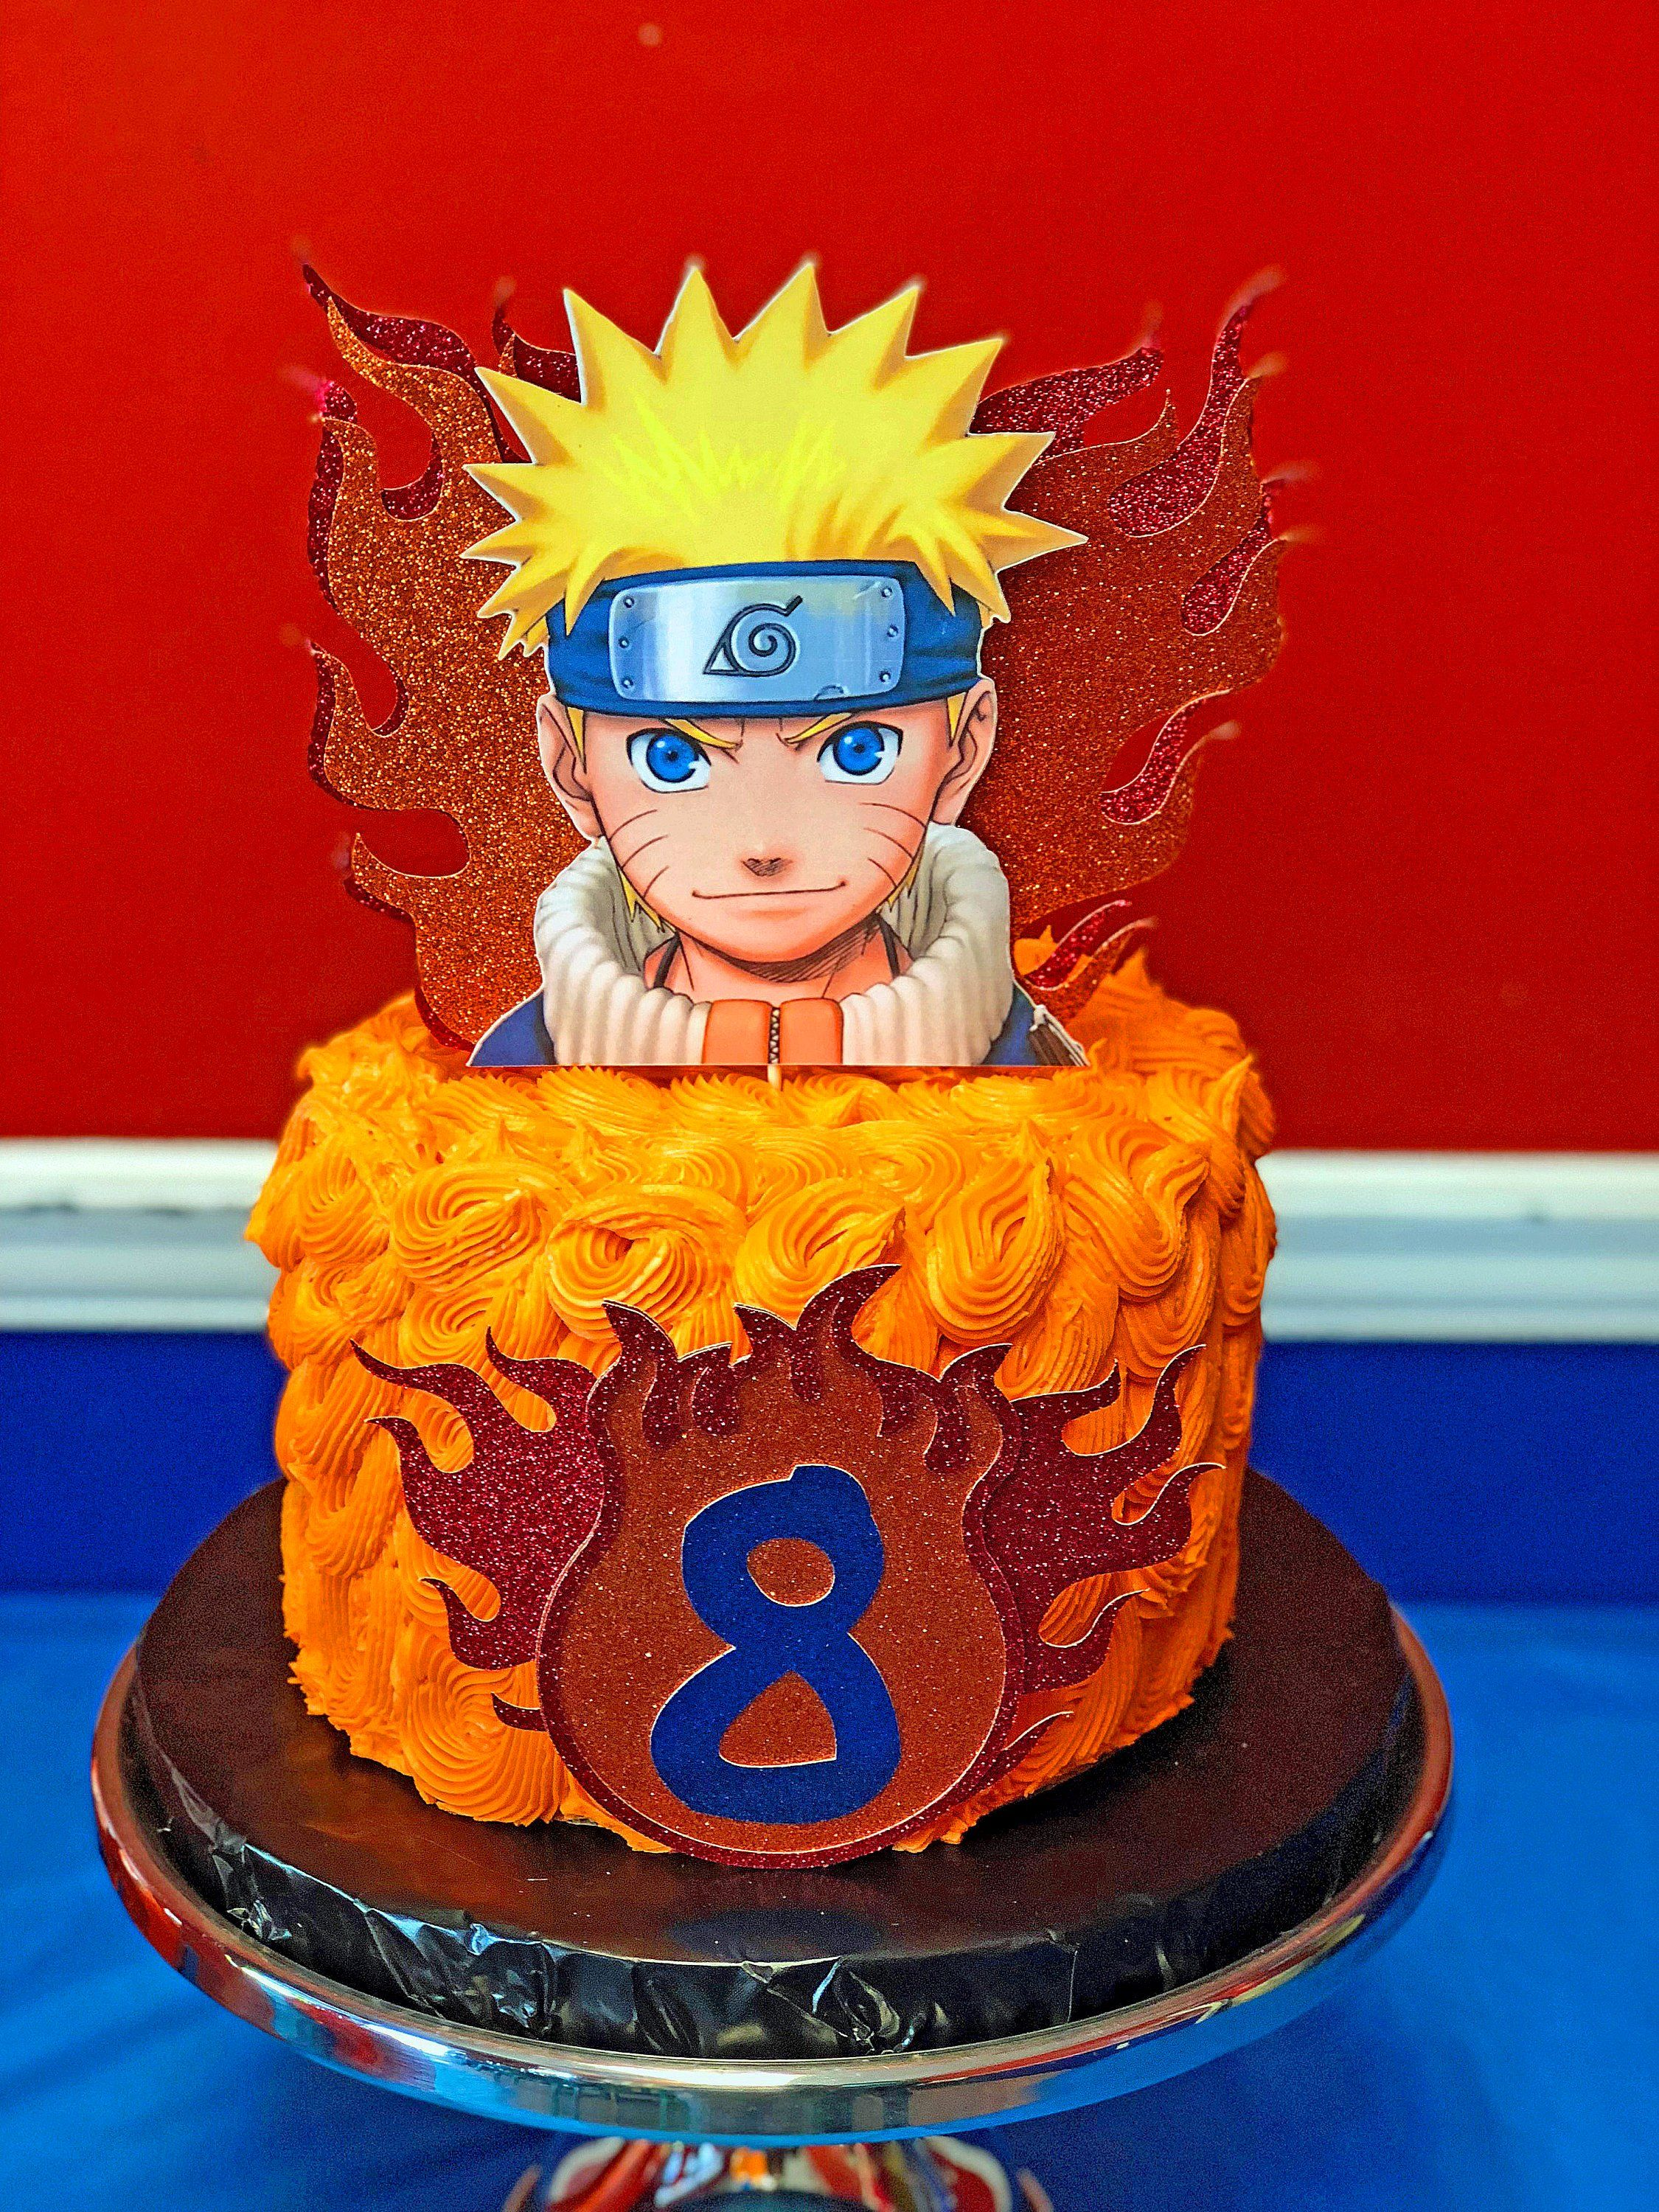 Naruto Cake TopperBirthdayCelebrationJapanese manga by